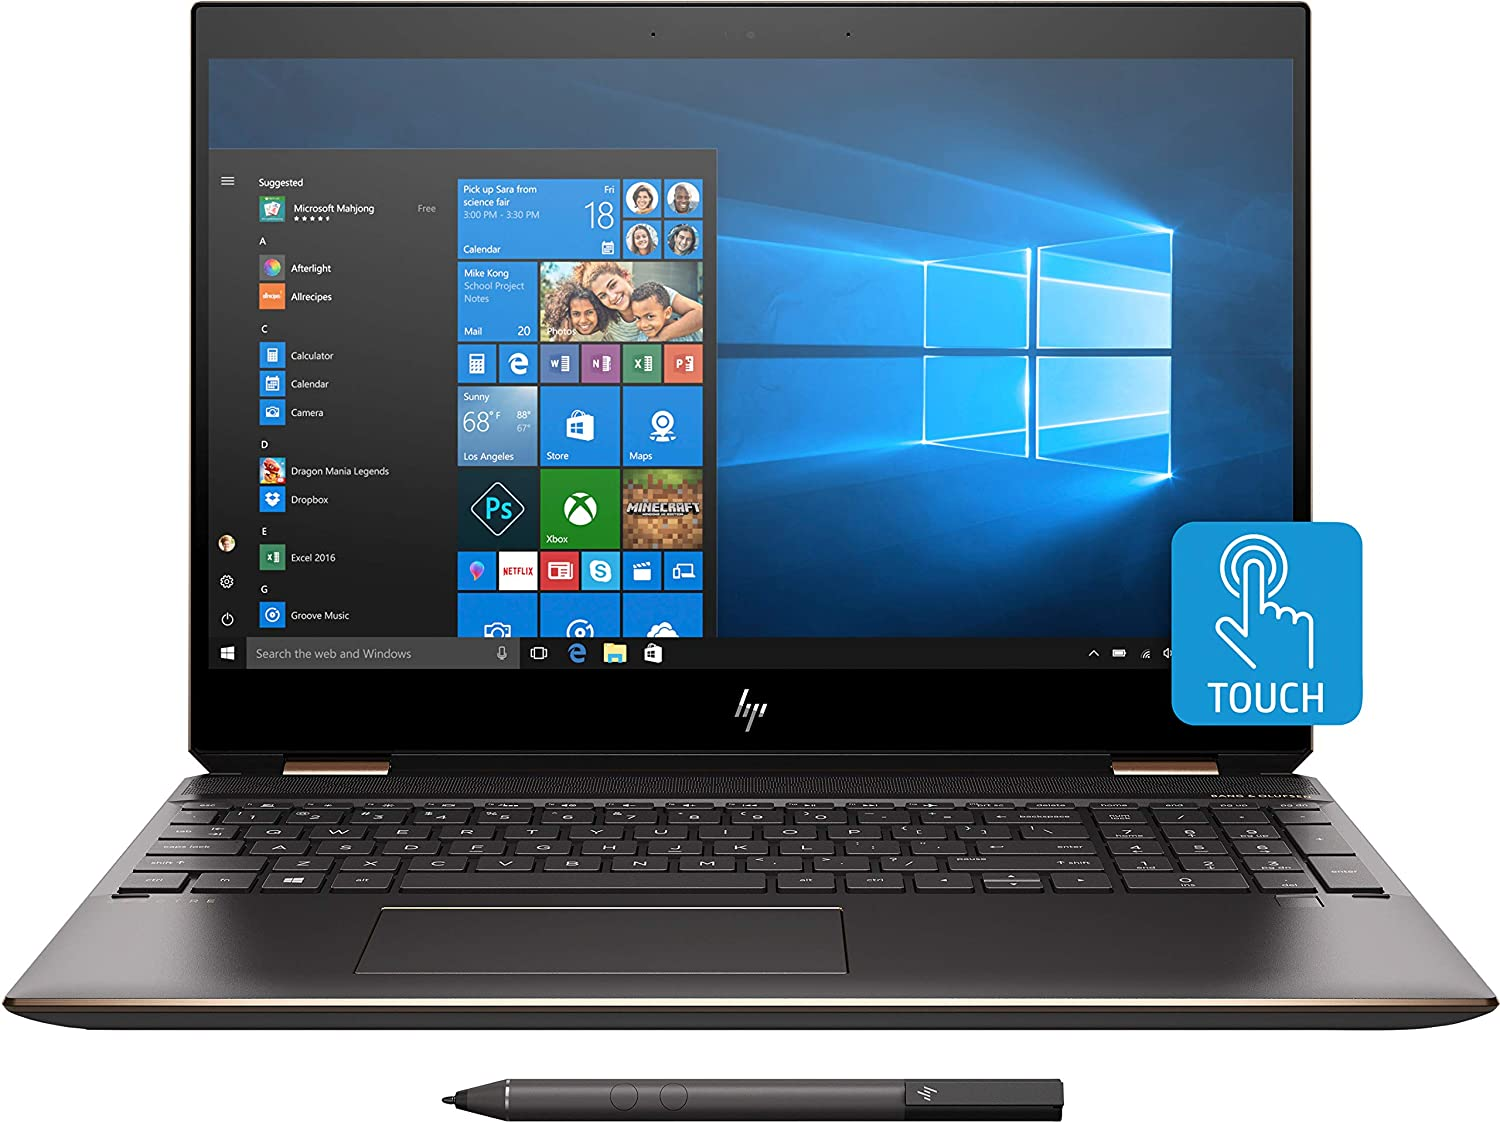 "HP - Spectre x360 2-in-1 15.6"" 4K Ultra HD Touch-Screen Laptop - Intel Core i7 - 16GB Memory - 512GB SSD - HP Finish In Dark Ash Silver, Sandblasted Finish"